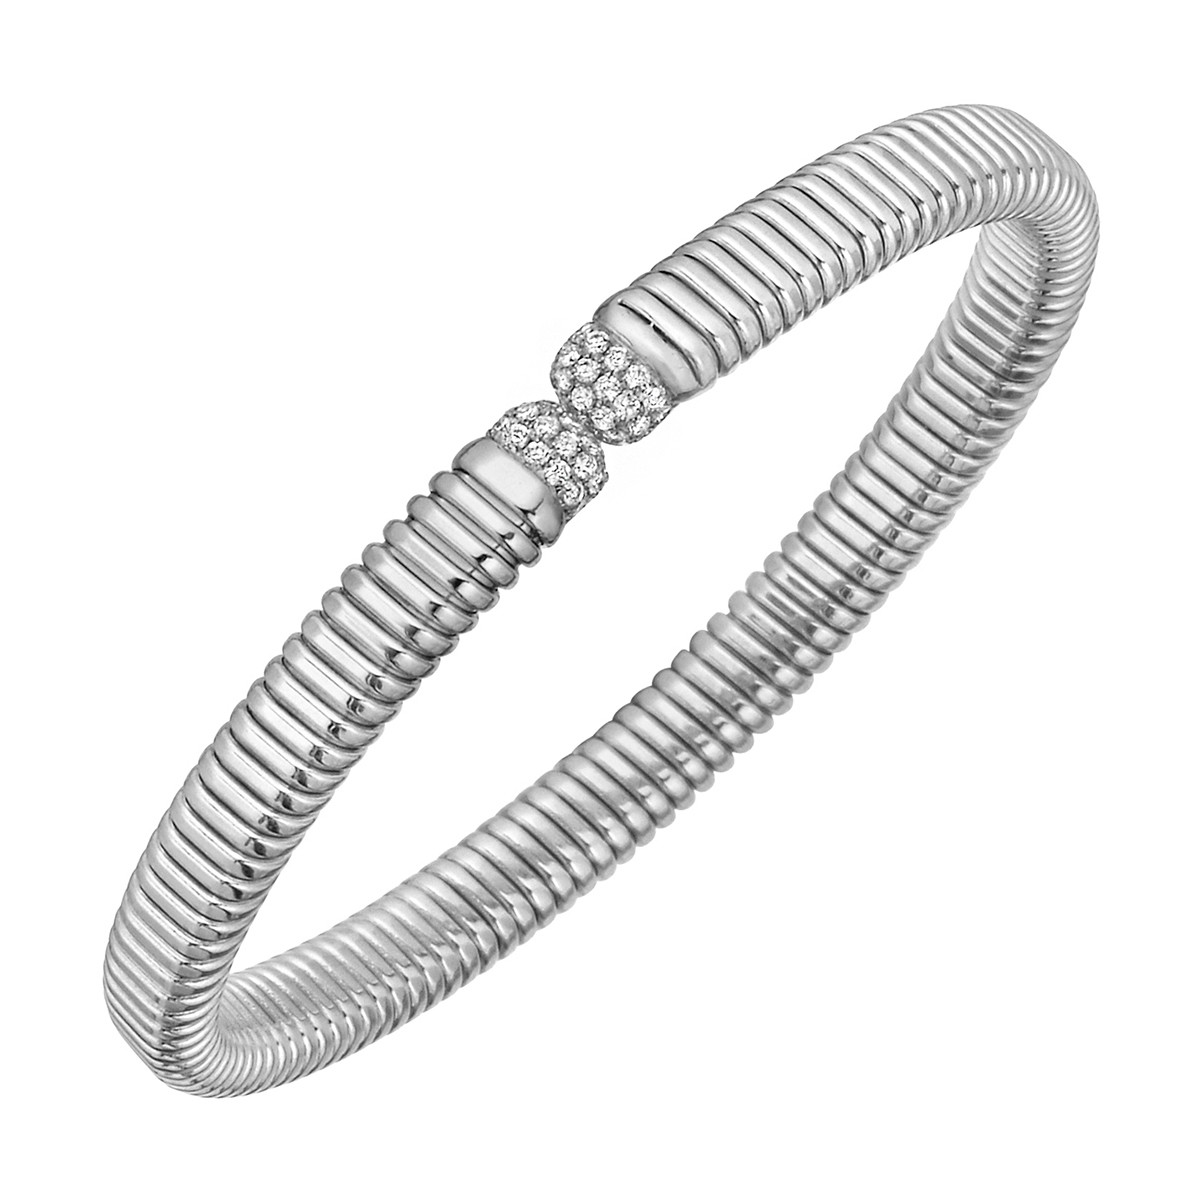 18k White Gold & Diamond Ribbed Cuff